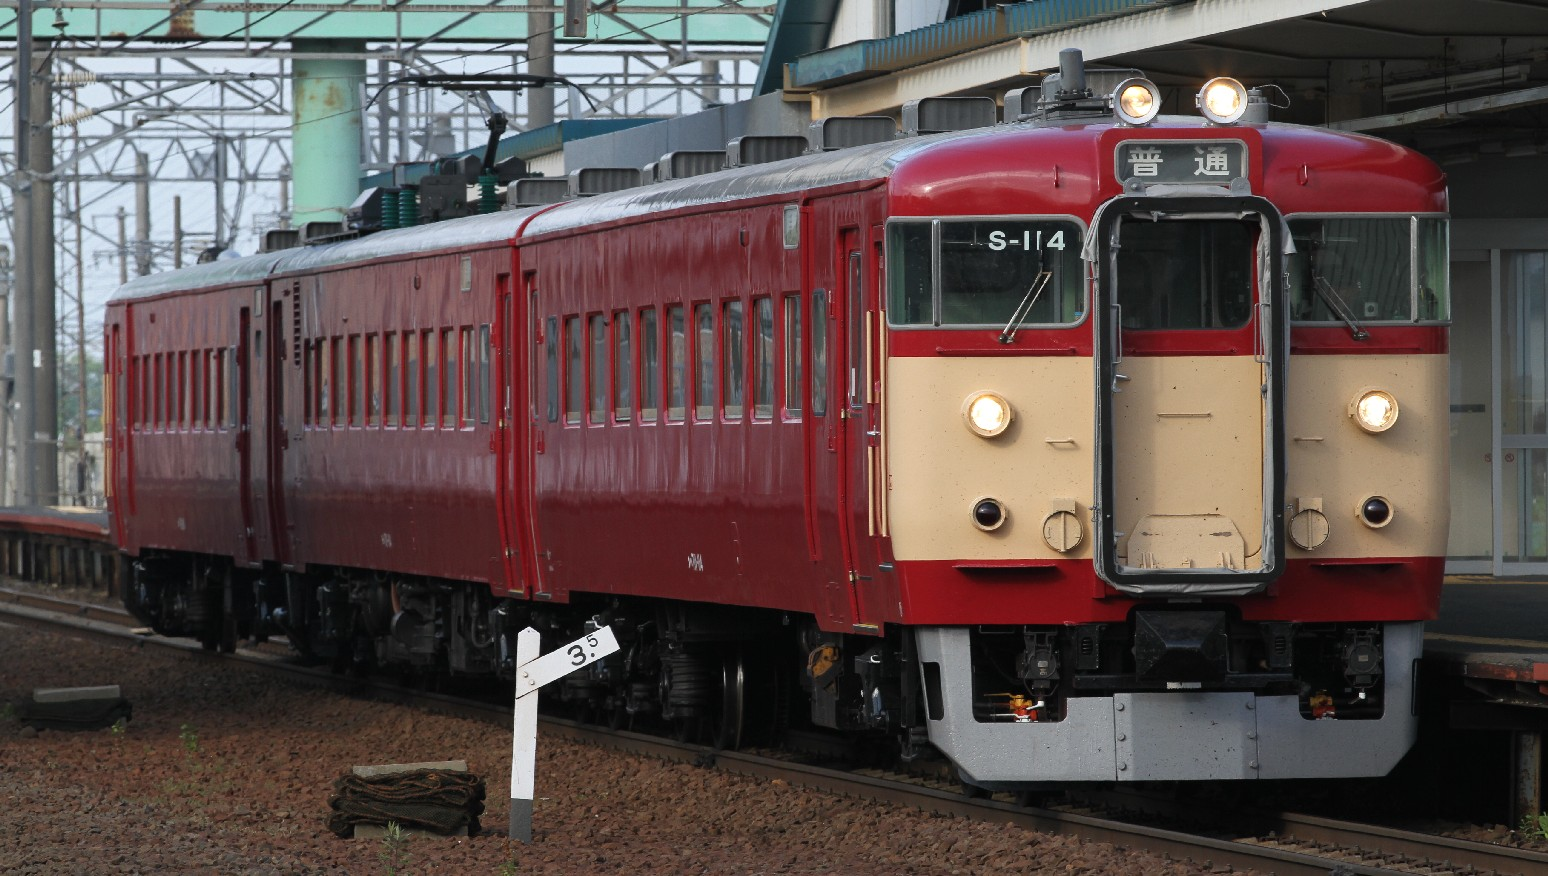 https://upload.wikimedia.org/wikipedia/commons/b/b9/JR_HOKKAIDO_EC711_S-114.jpg